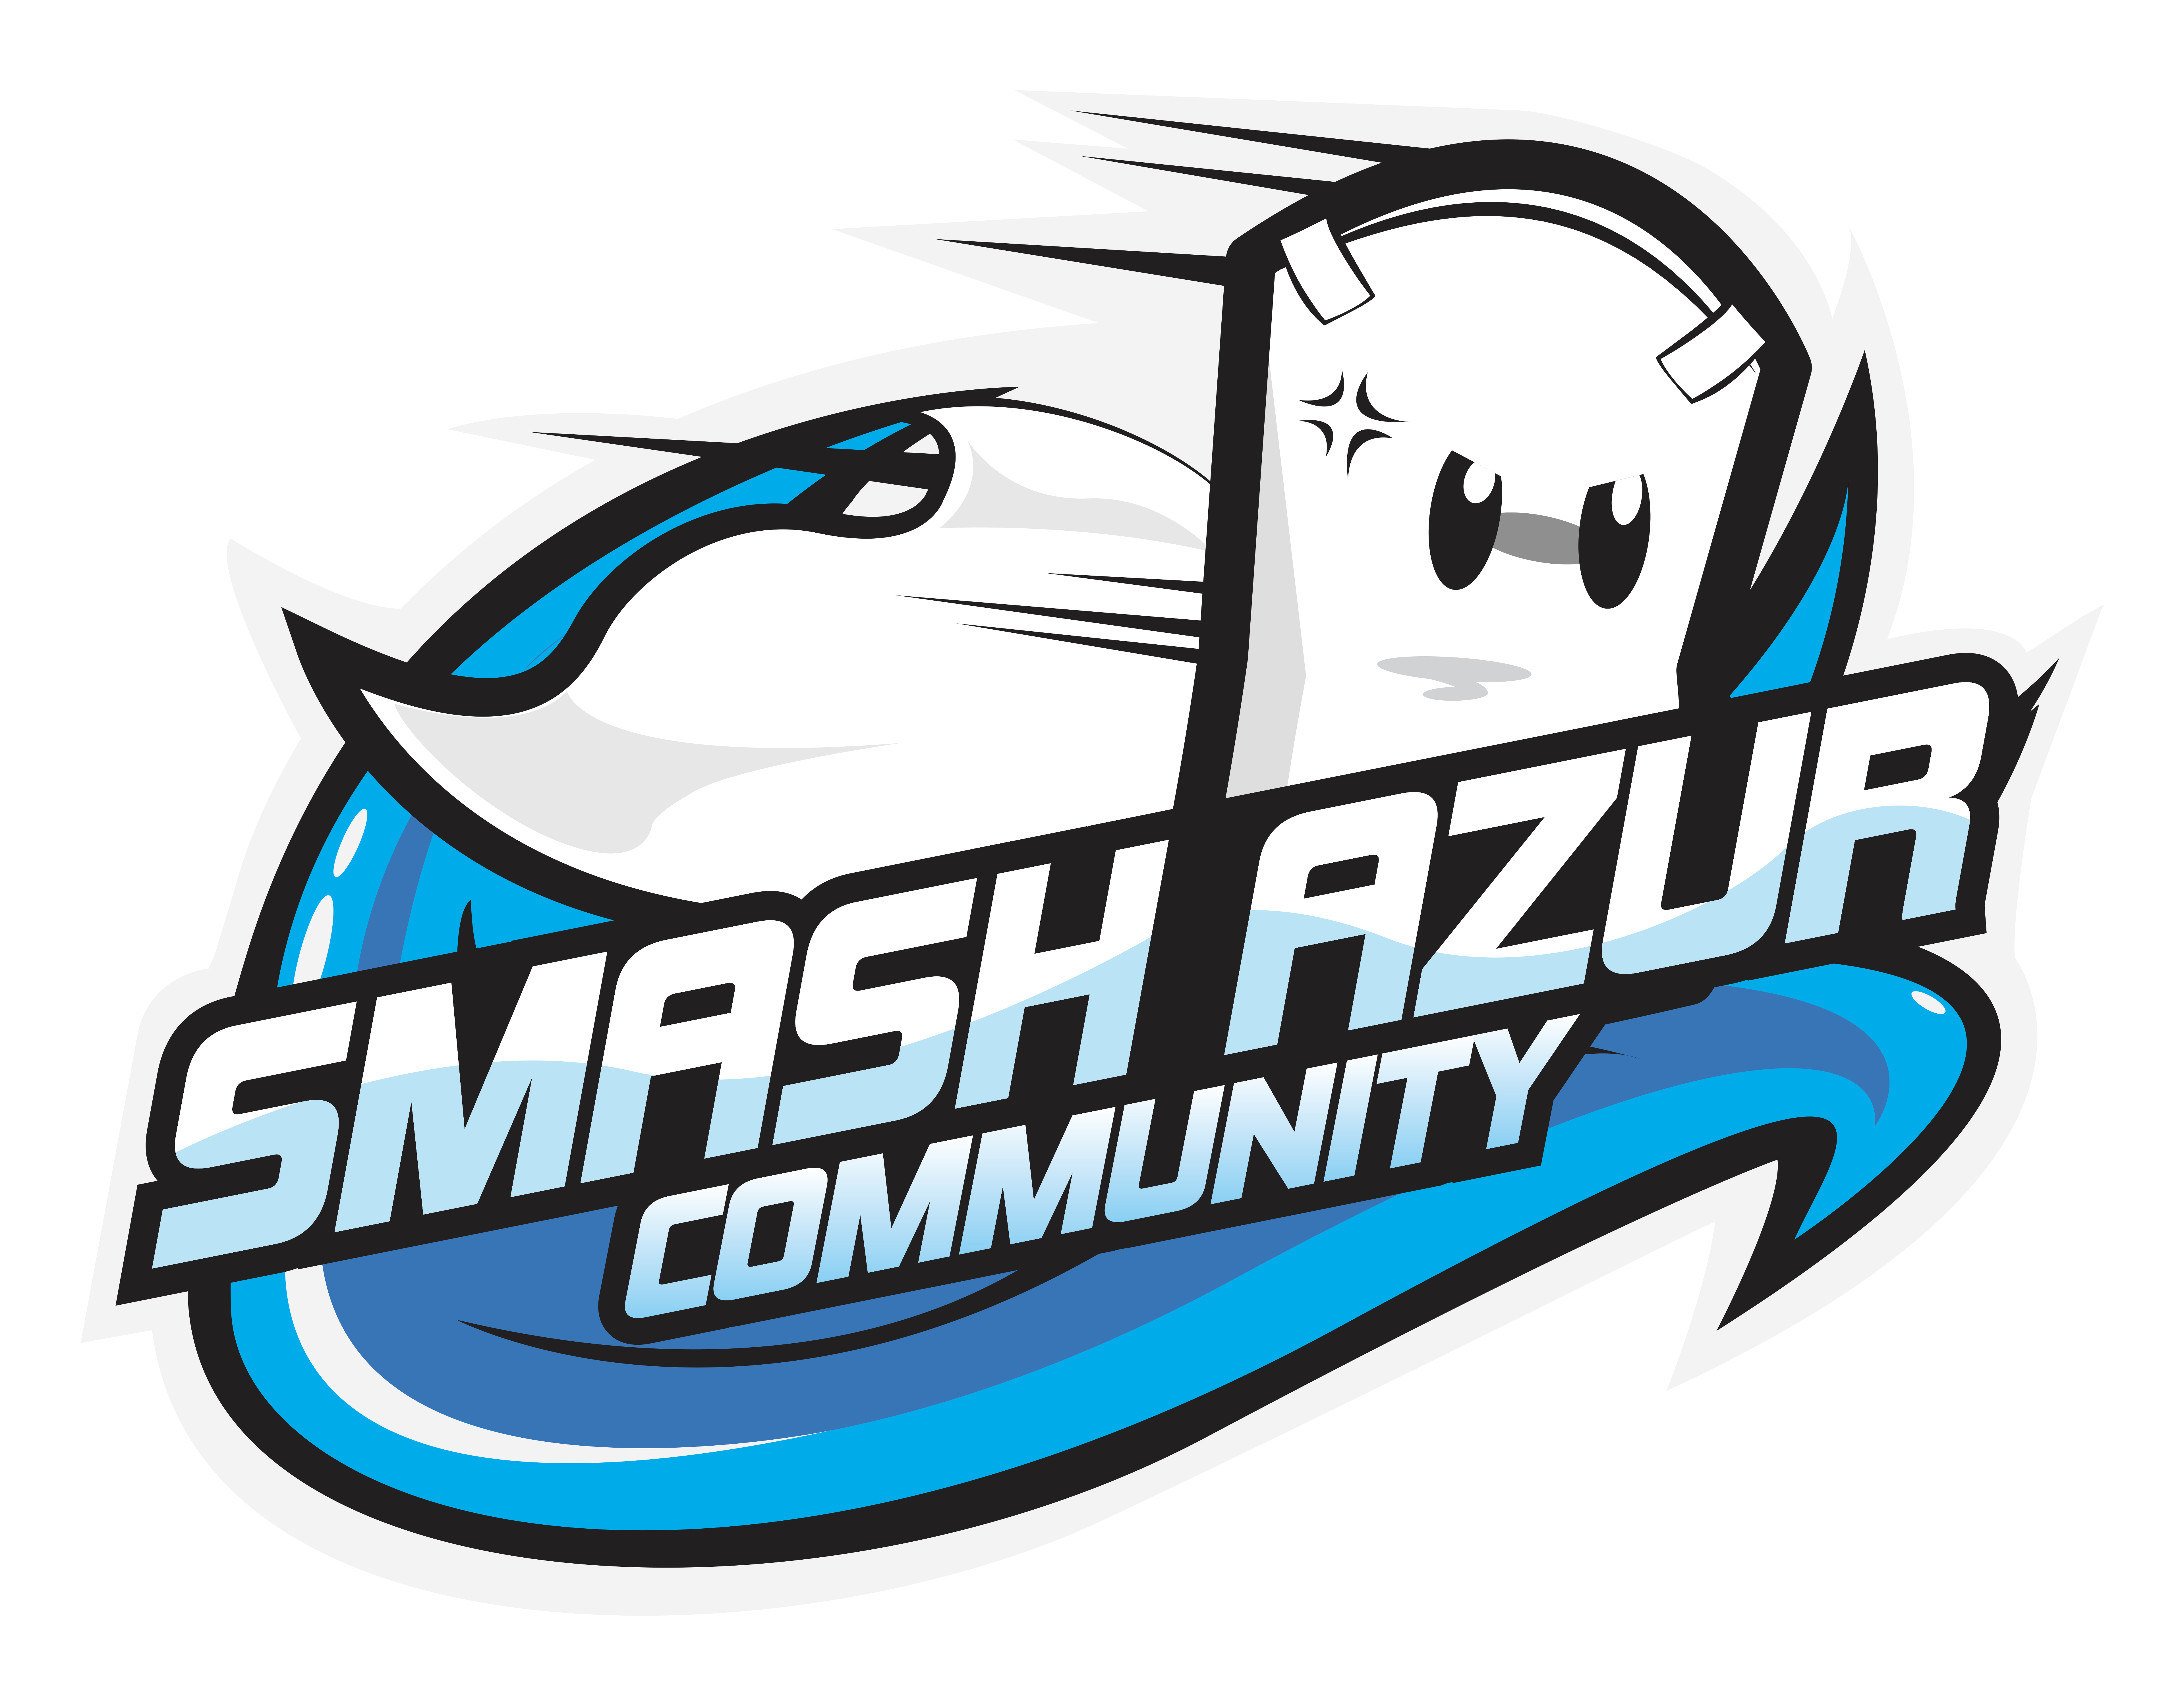 Smash Azur Community profile picture